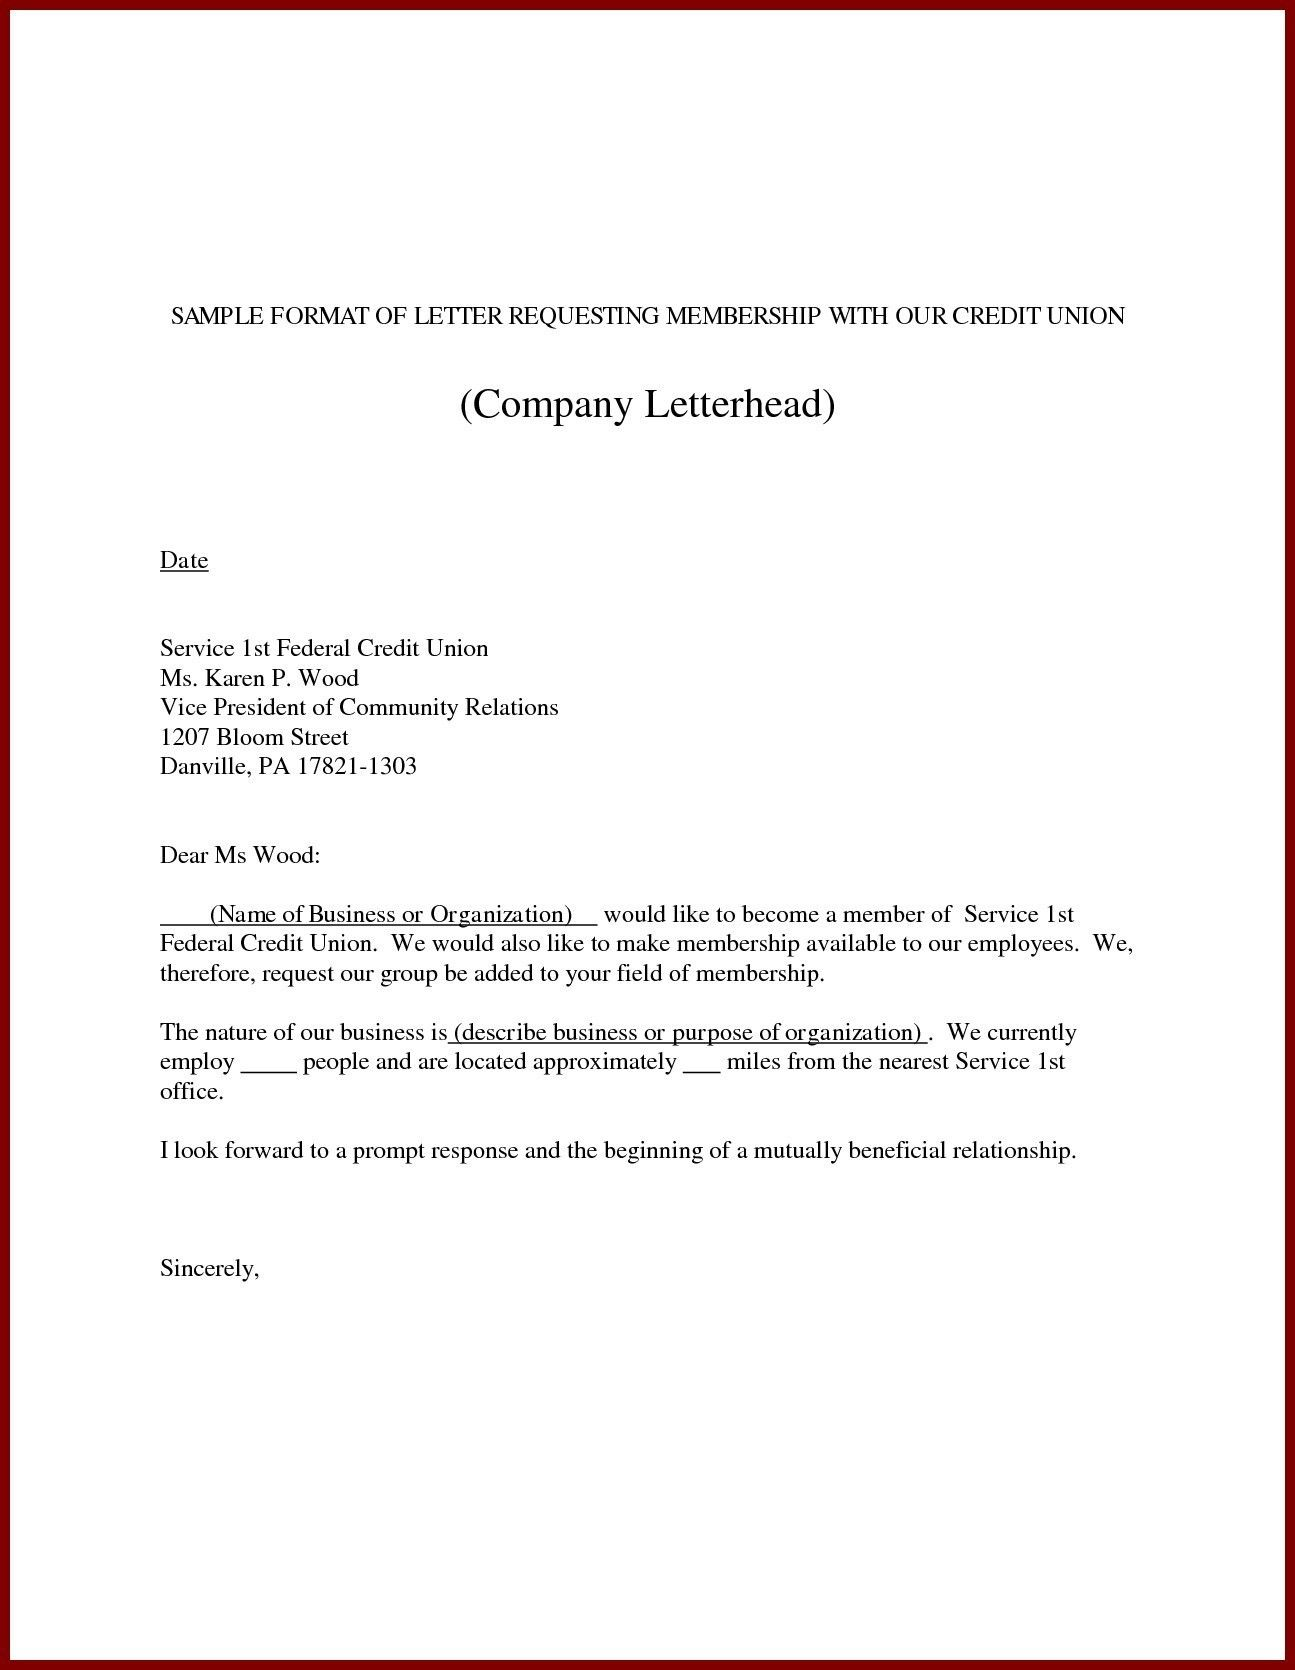 You Can See This Valid Letter Format For Material Request At Valid Letter Format For Material Request For Free Check Letter Format Lettering Company Letterhead